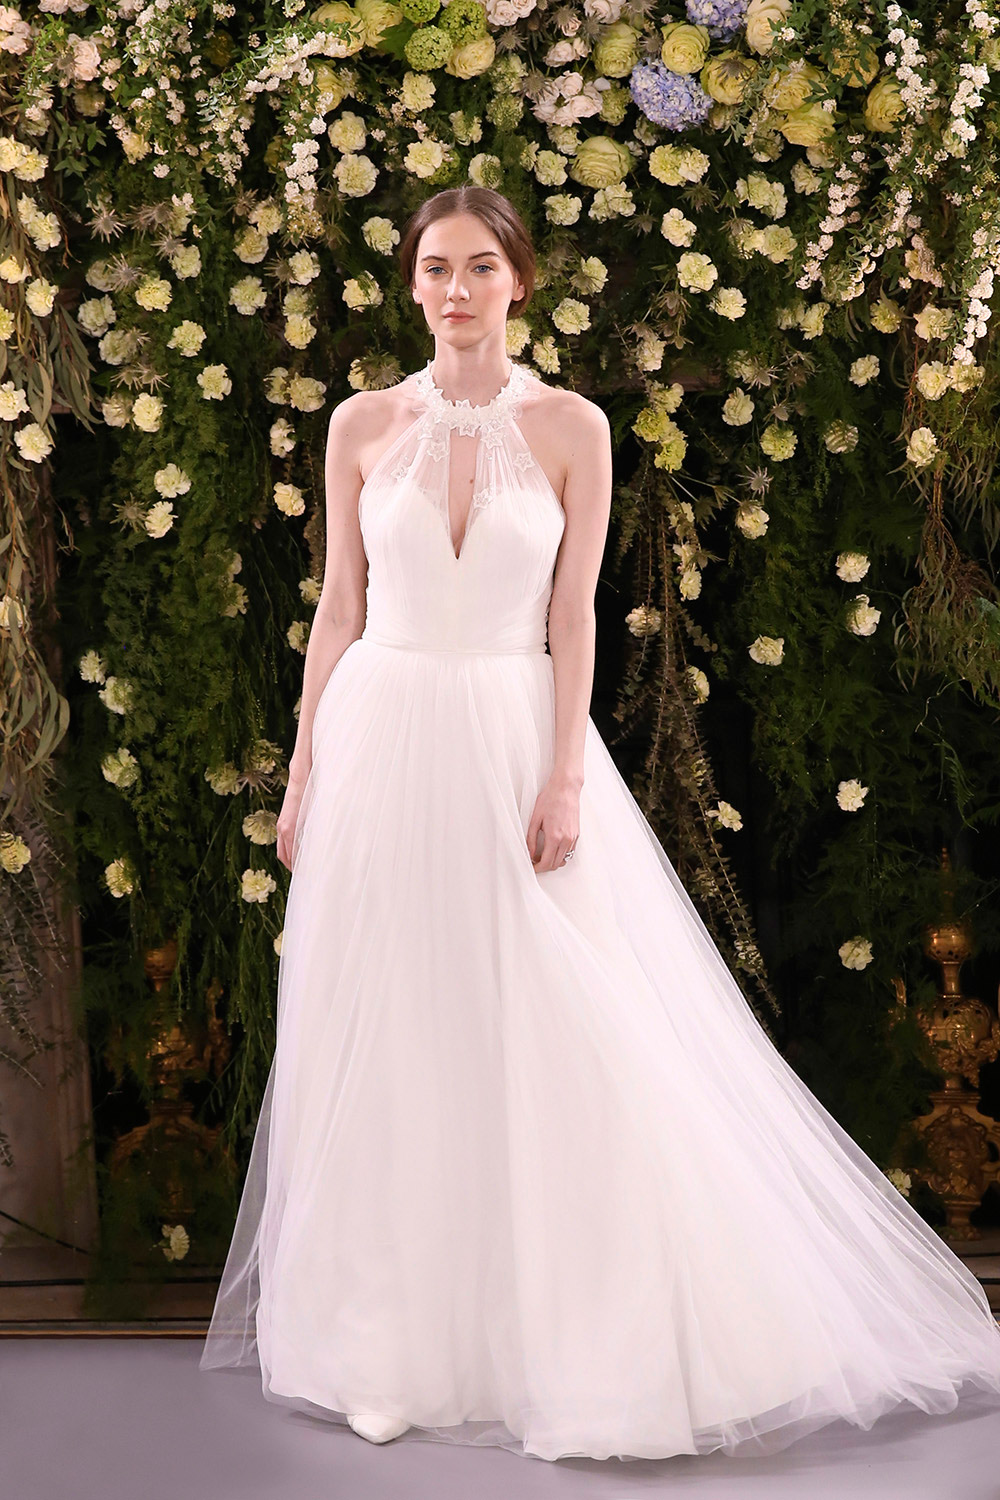 Lois – Jenny Packham 2019 Bridal Collection. www.theweddingnotebook.com